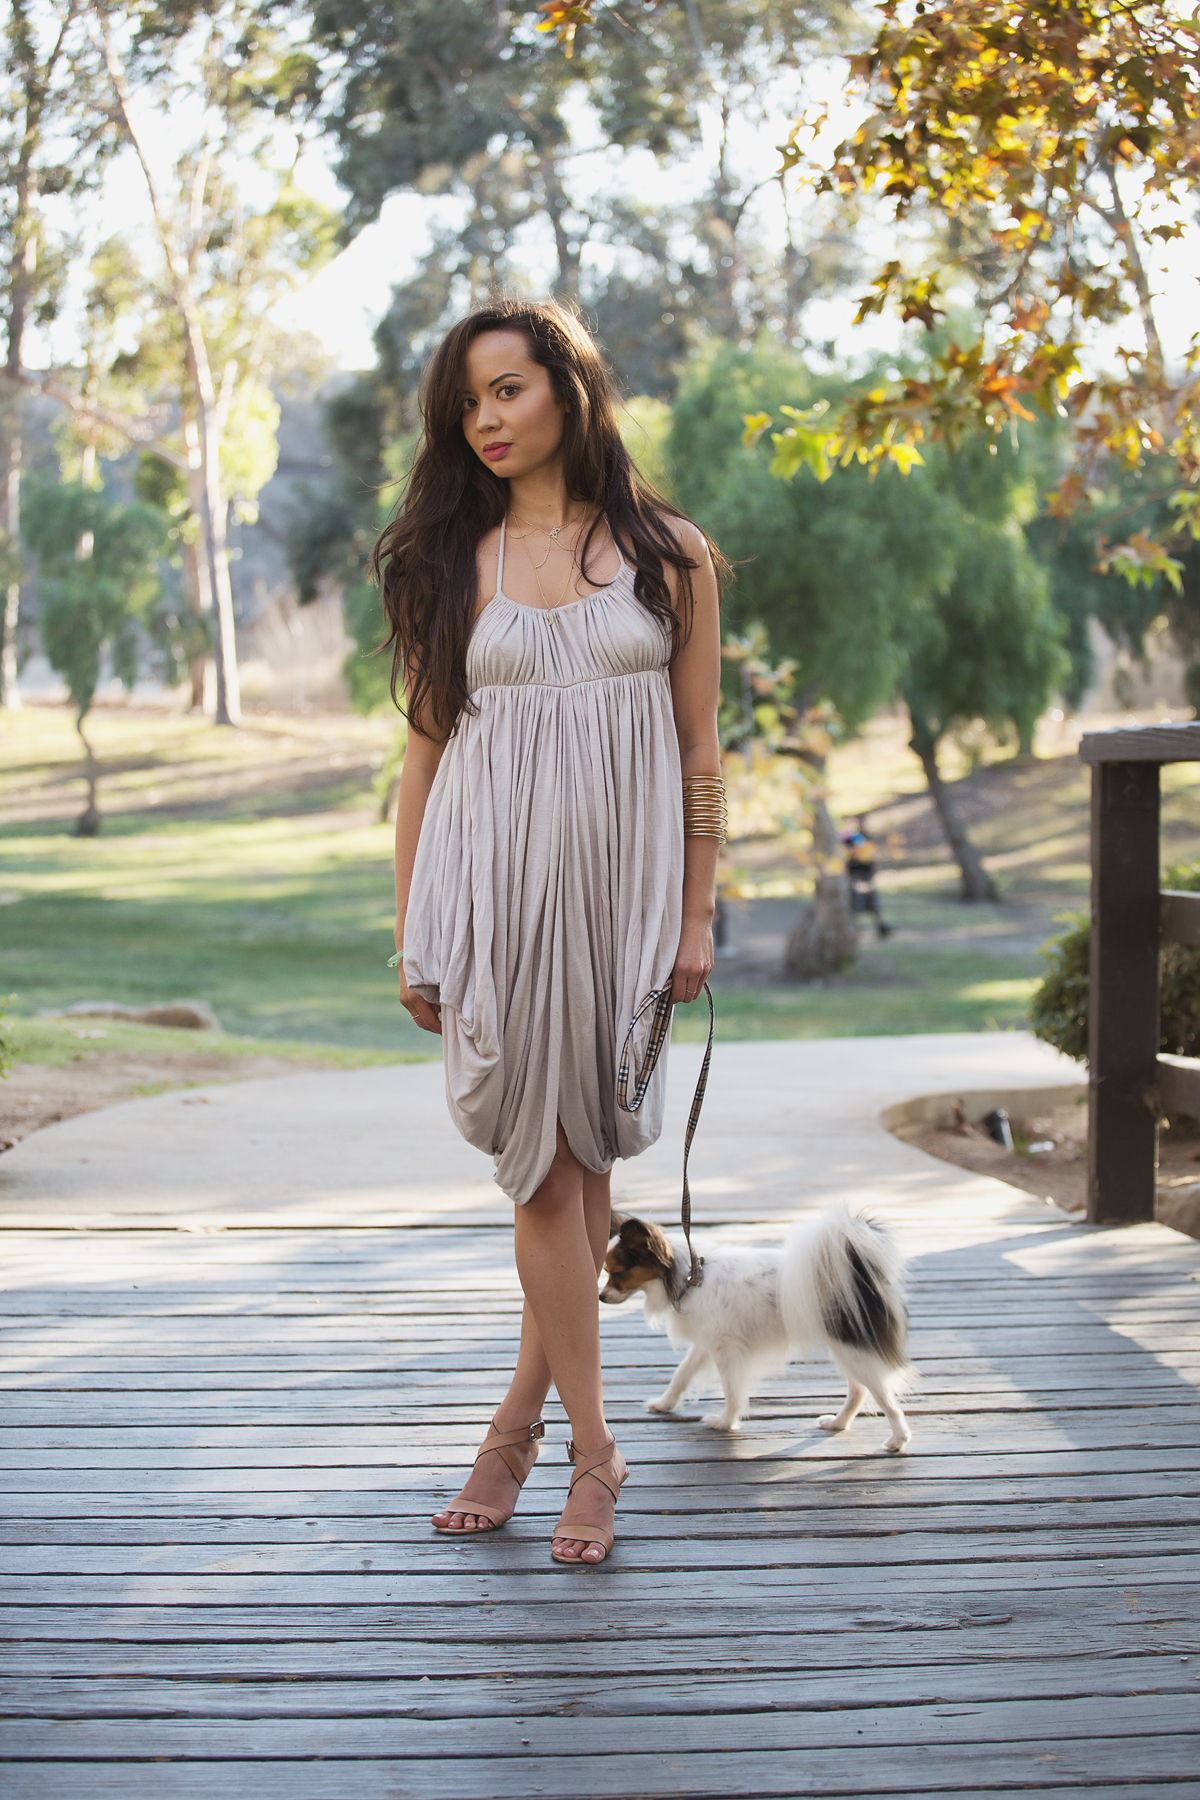 los angeles style blogs, fashion blog, la style, la model, kenneth hahn park, michelle mason dress, the la survival guide, la survival guide, papillon, michael kors heels, kelly wearstler jewelry, jewelmint necklace